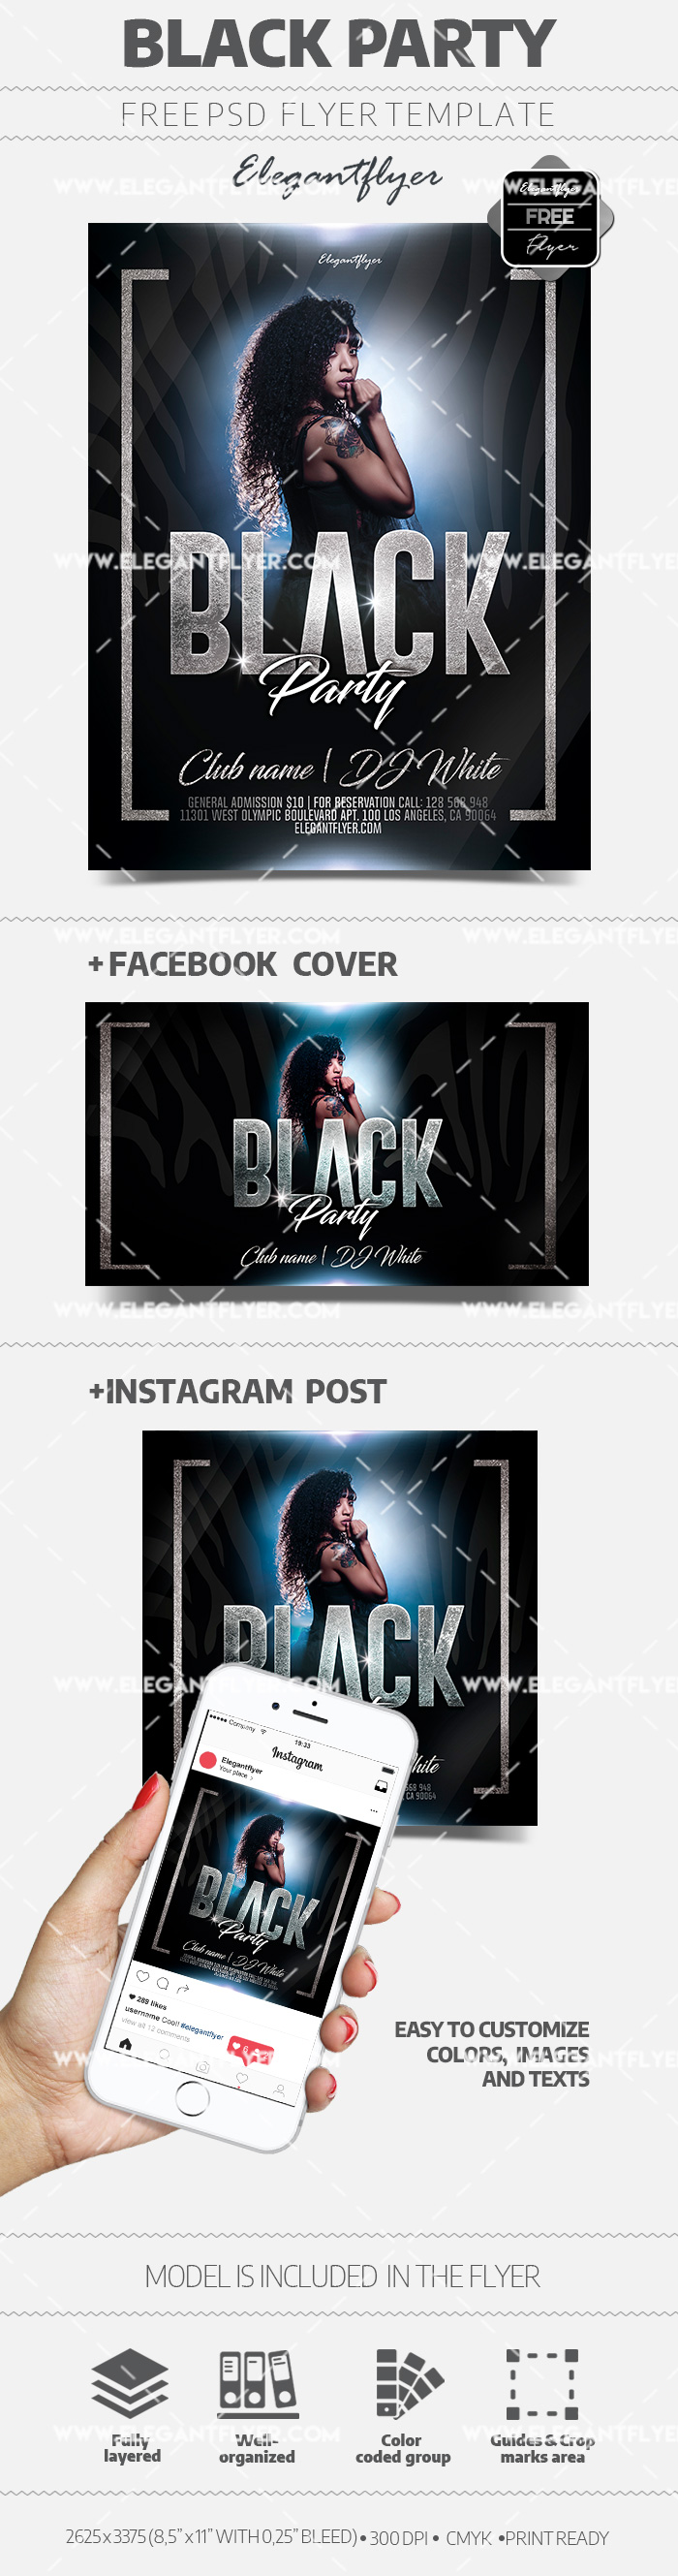 Black Mood – Free PSD Flyer Template + Facebook Cover + Instagram Post